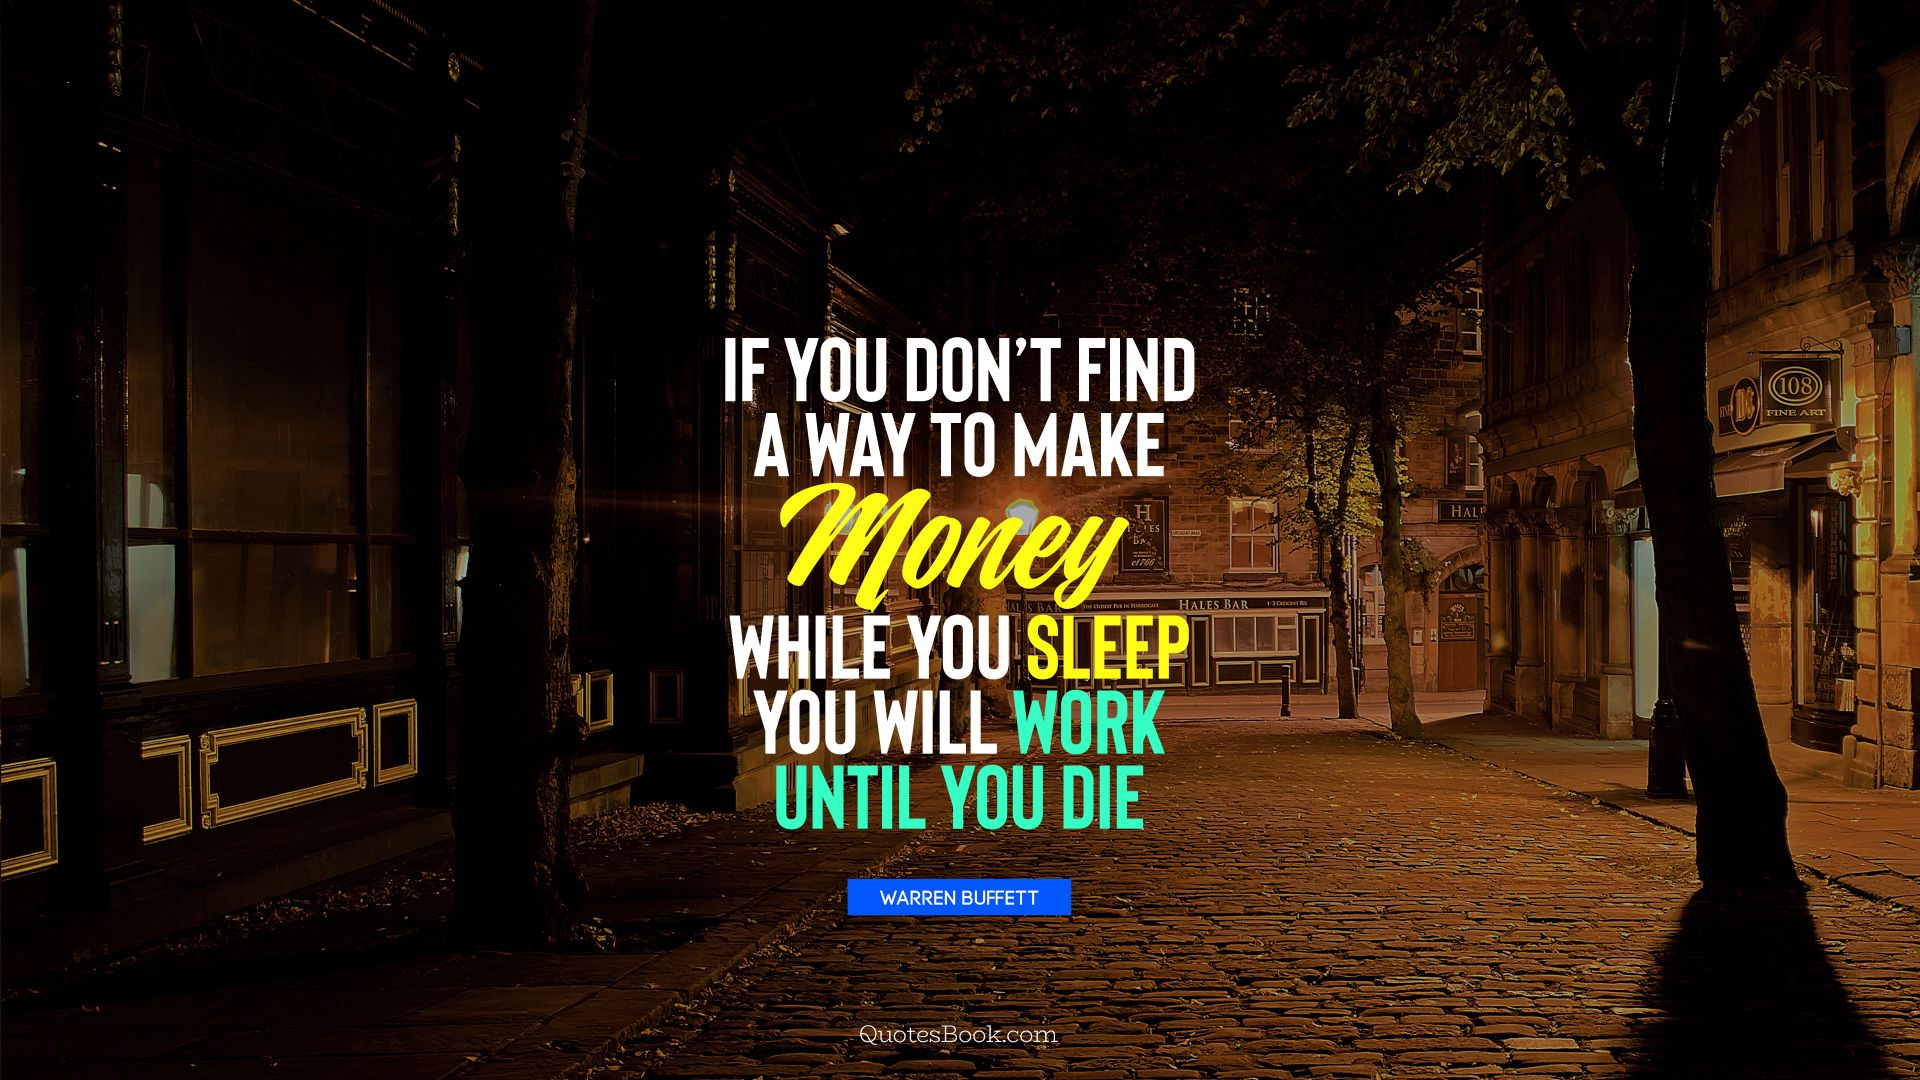 If you don't find a way to make money while you sleep you will work until you die . - Quote by Warren Buffett